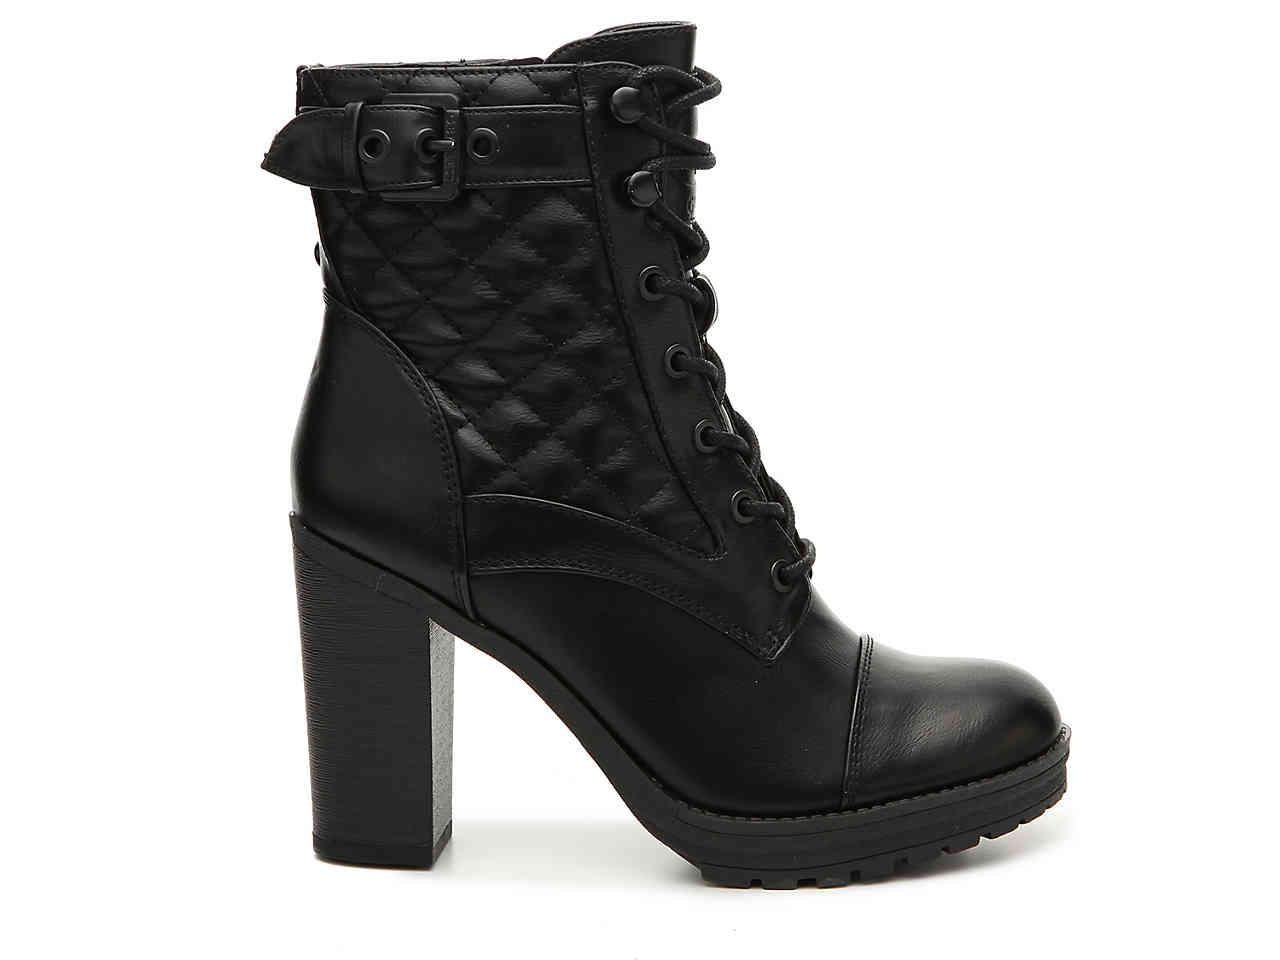 G by Guess Gift Platform Bootie in